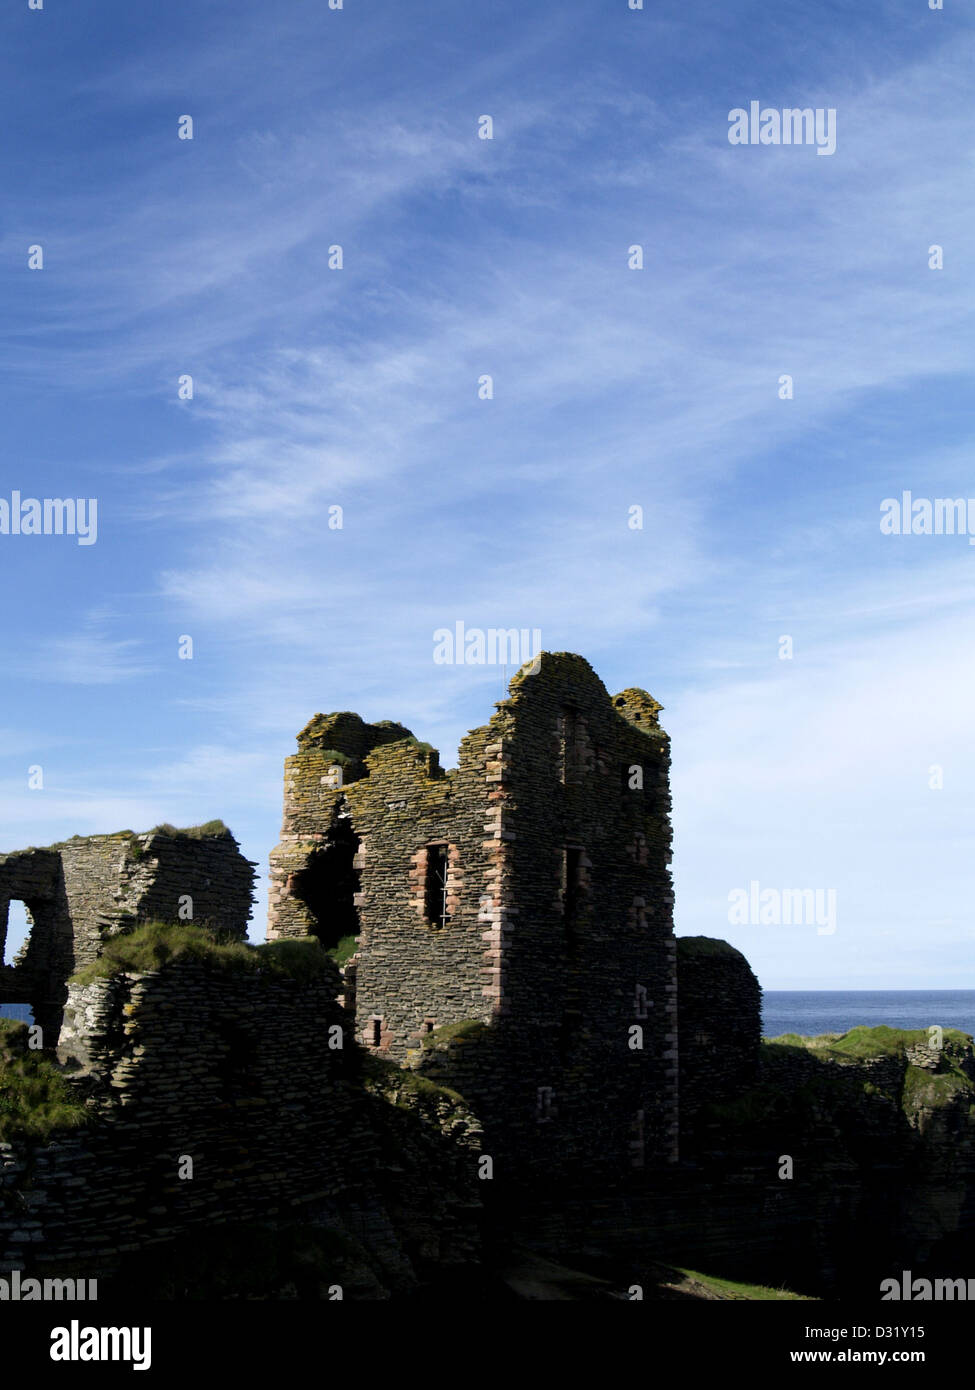 The Castle of Sinclair and Girnigoe, on the Caithness coast, north of Wick in the Scottish Highlands - Stock Image